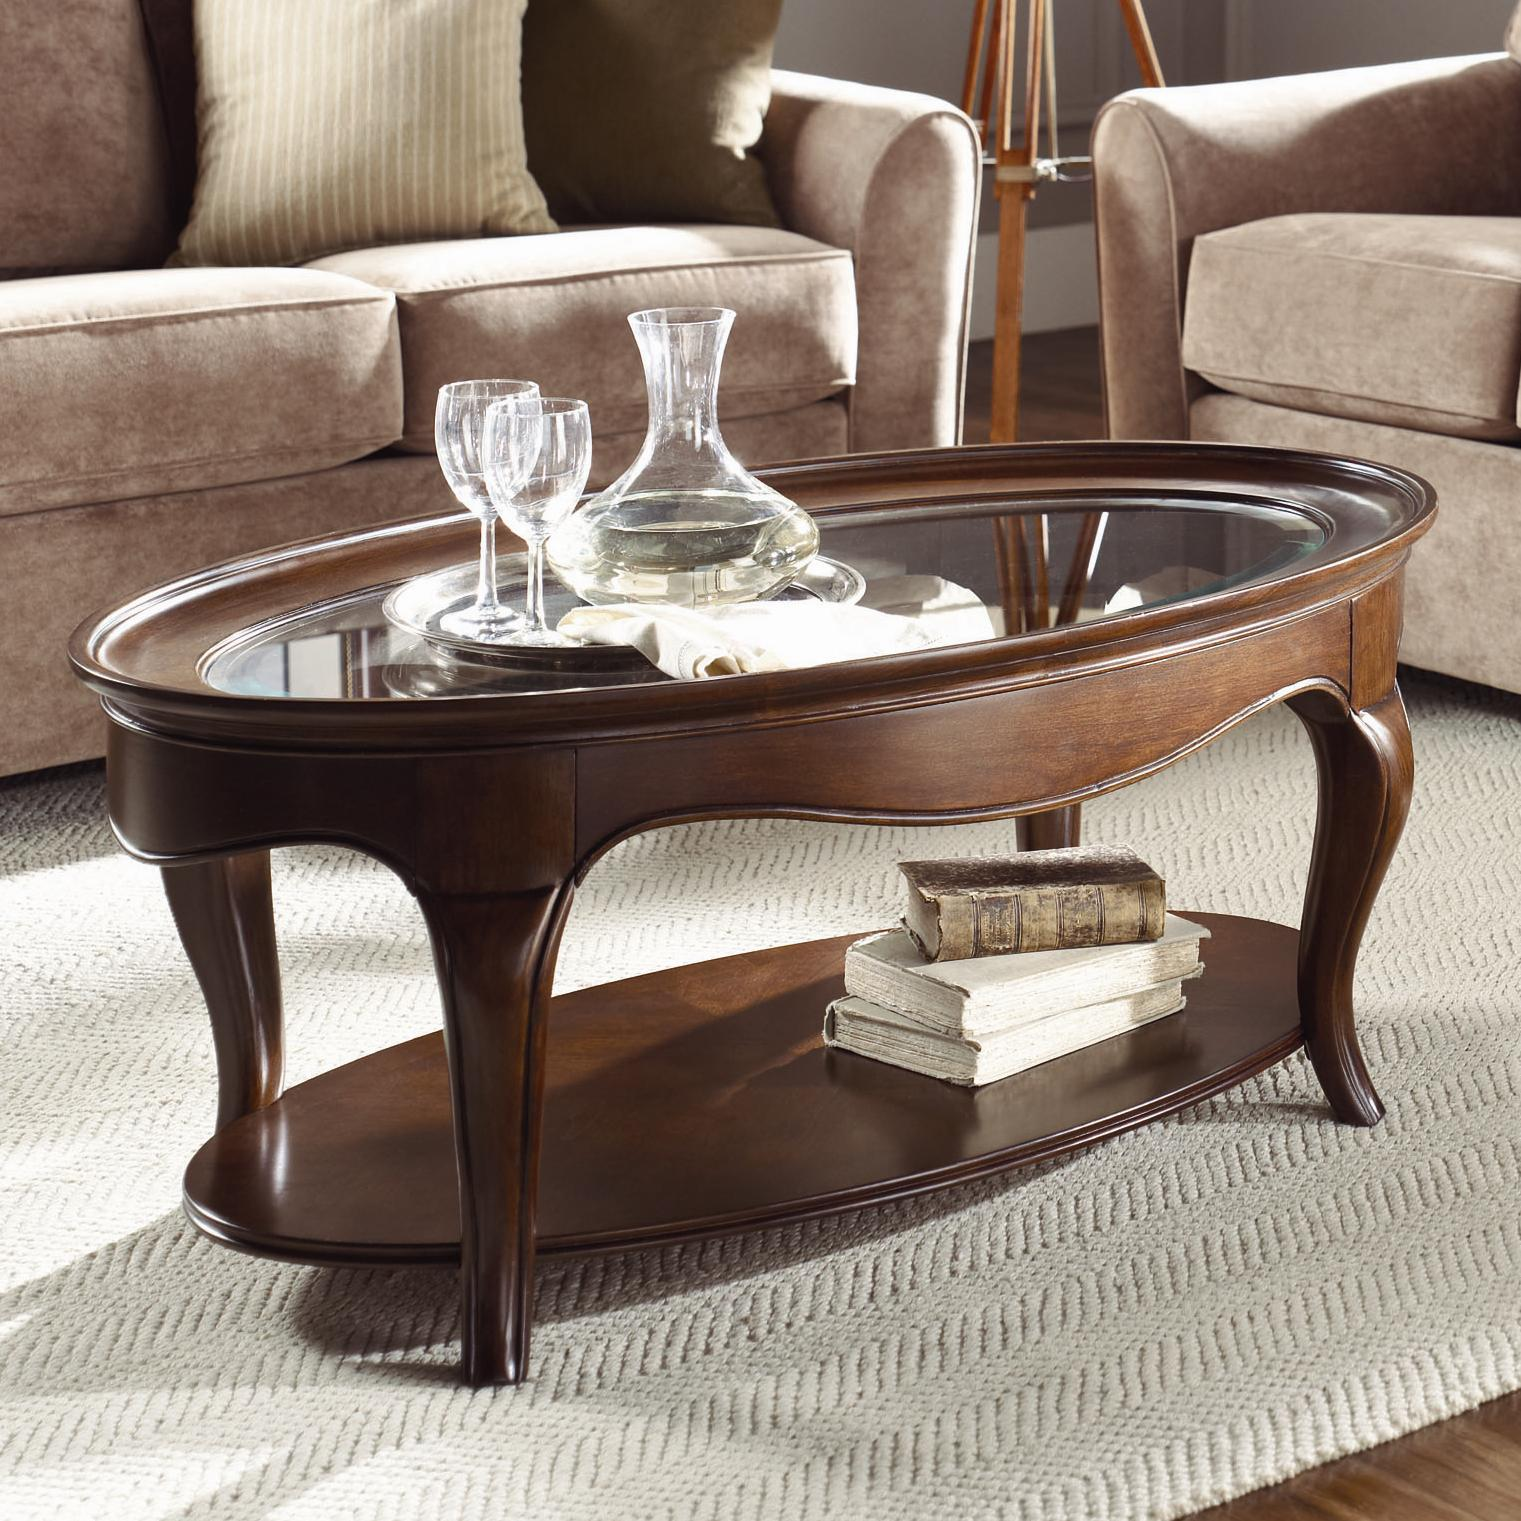 American Drew Cherry Grove Oval Cocktail Table With Glass Top   AHFA    Cocktail Or Coffee Table Dealer Locator